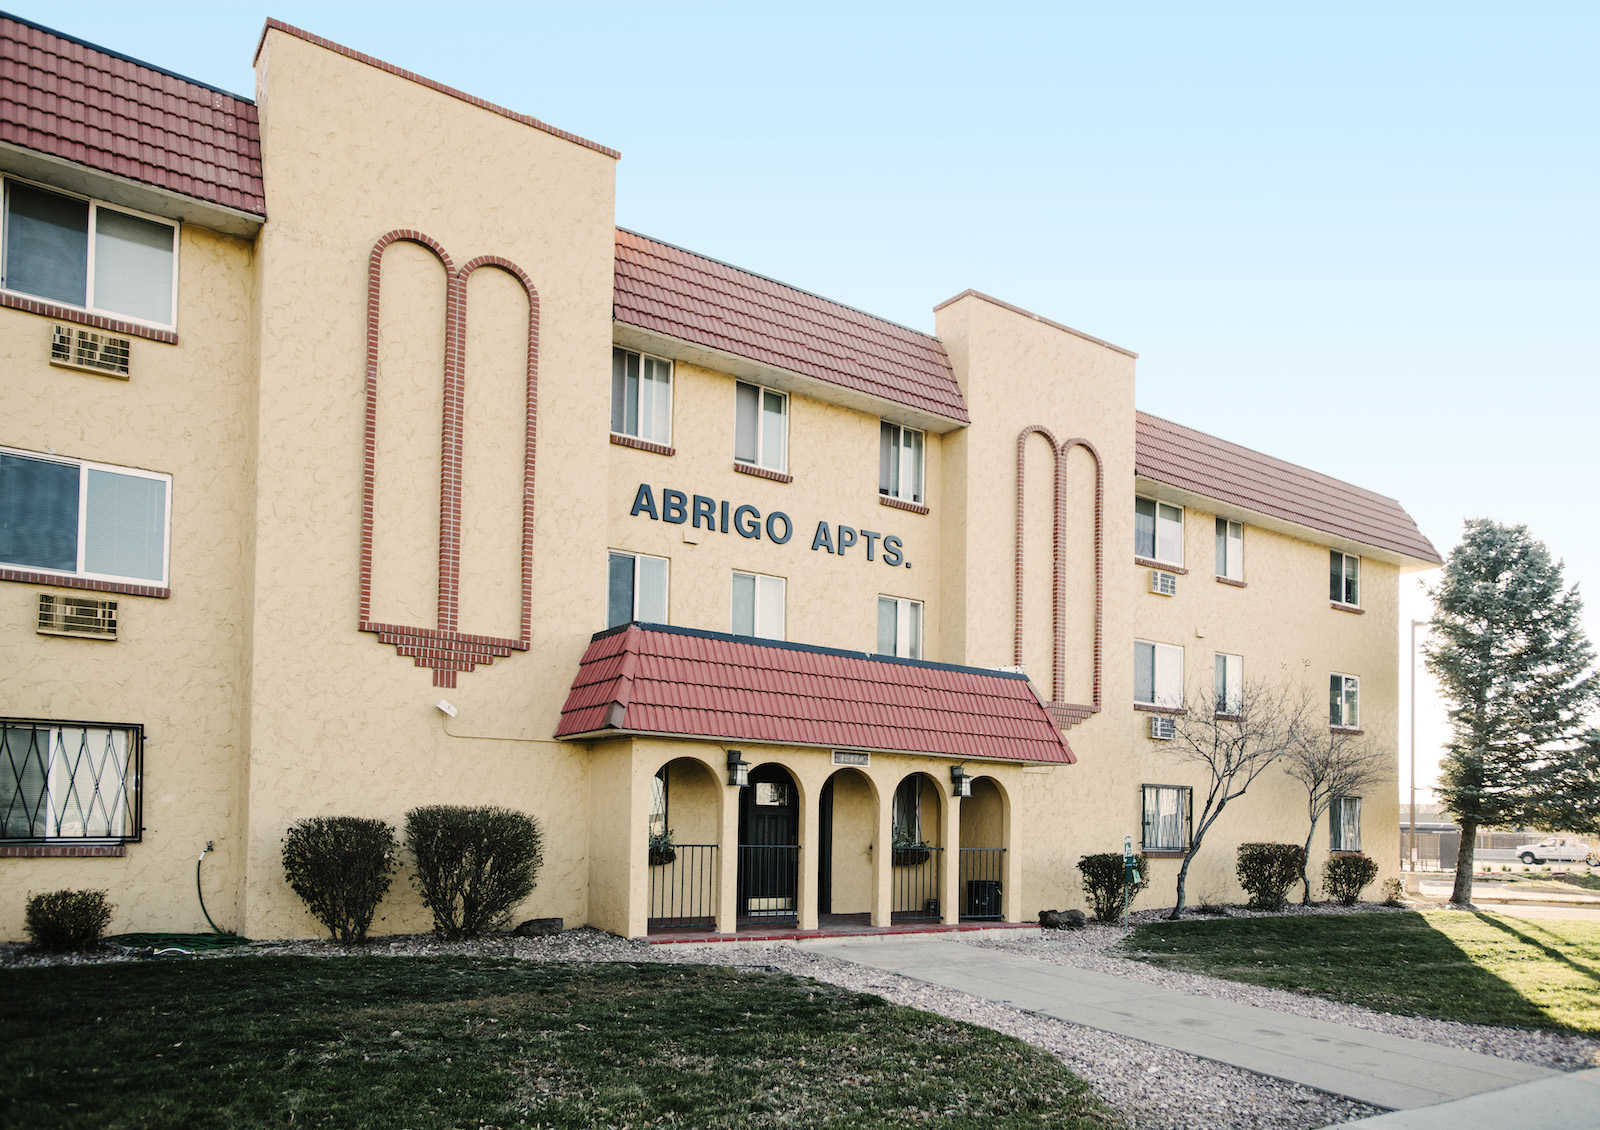 Outside of abrigo apartments